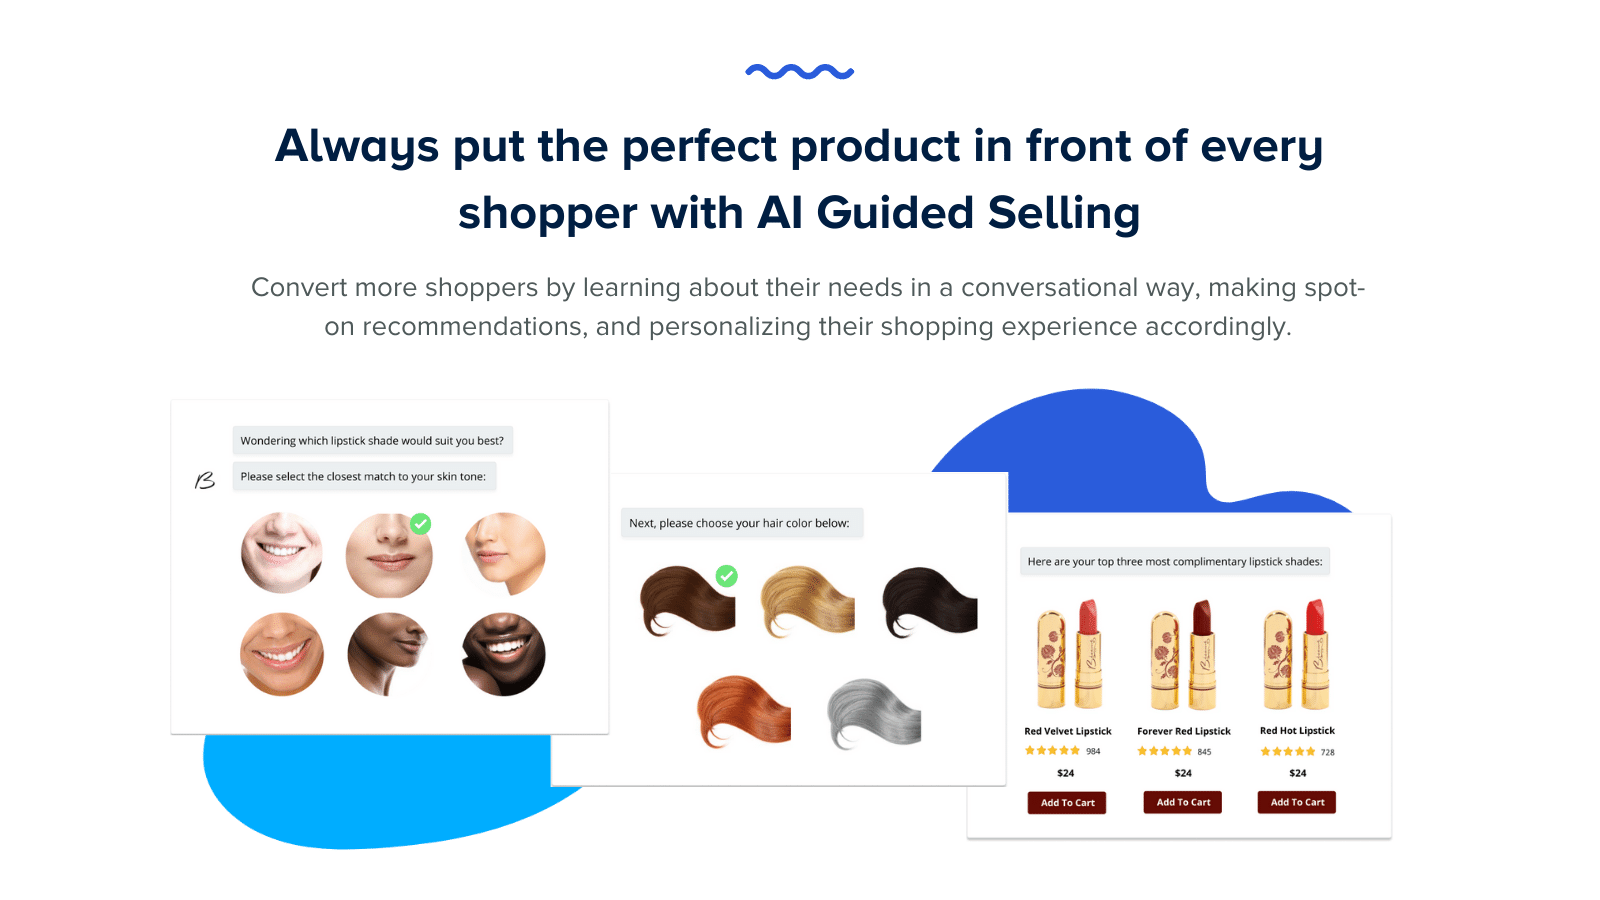 Always put the perfect product in front of every shopper